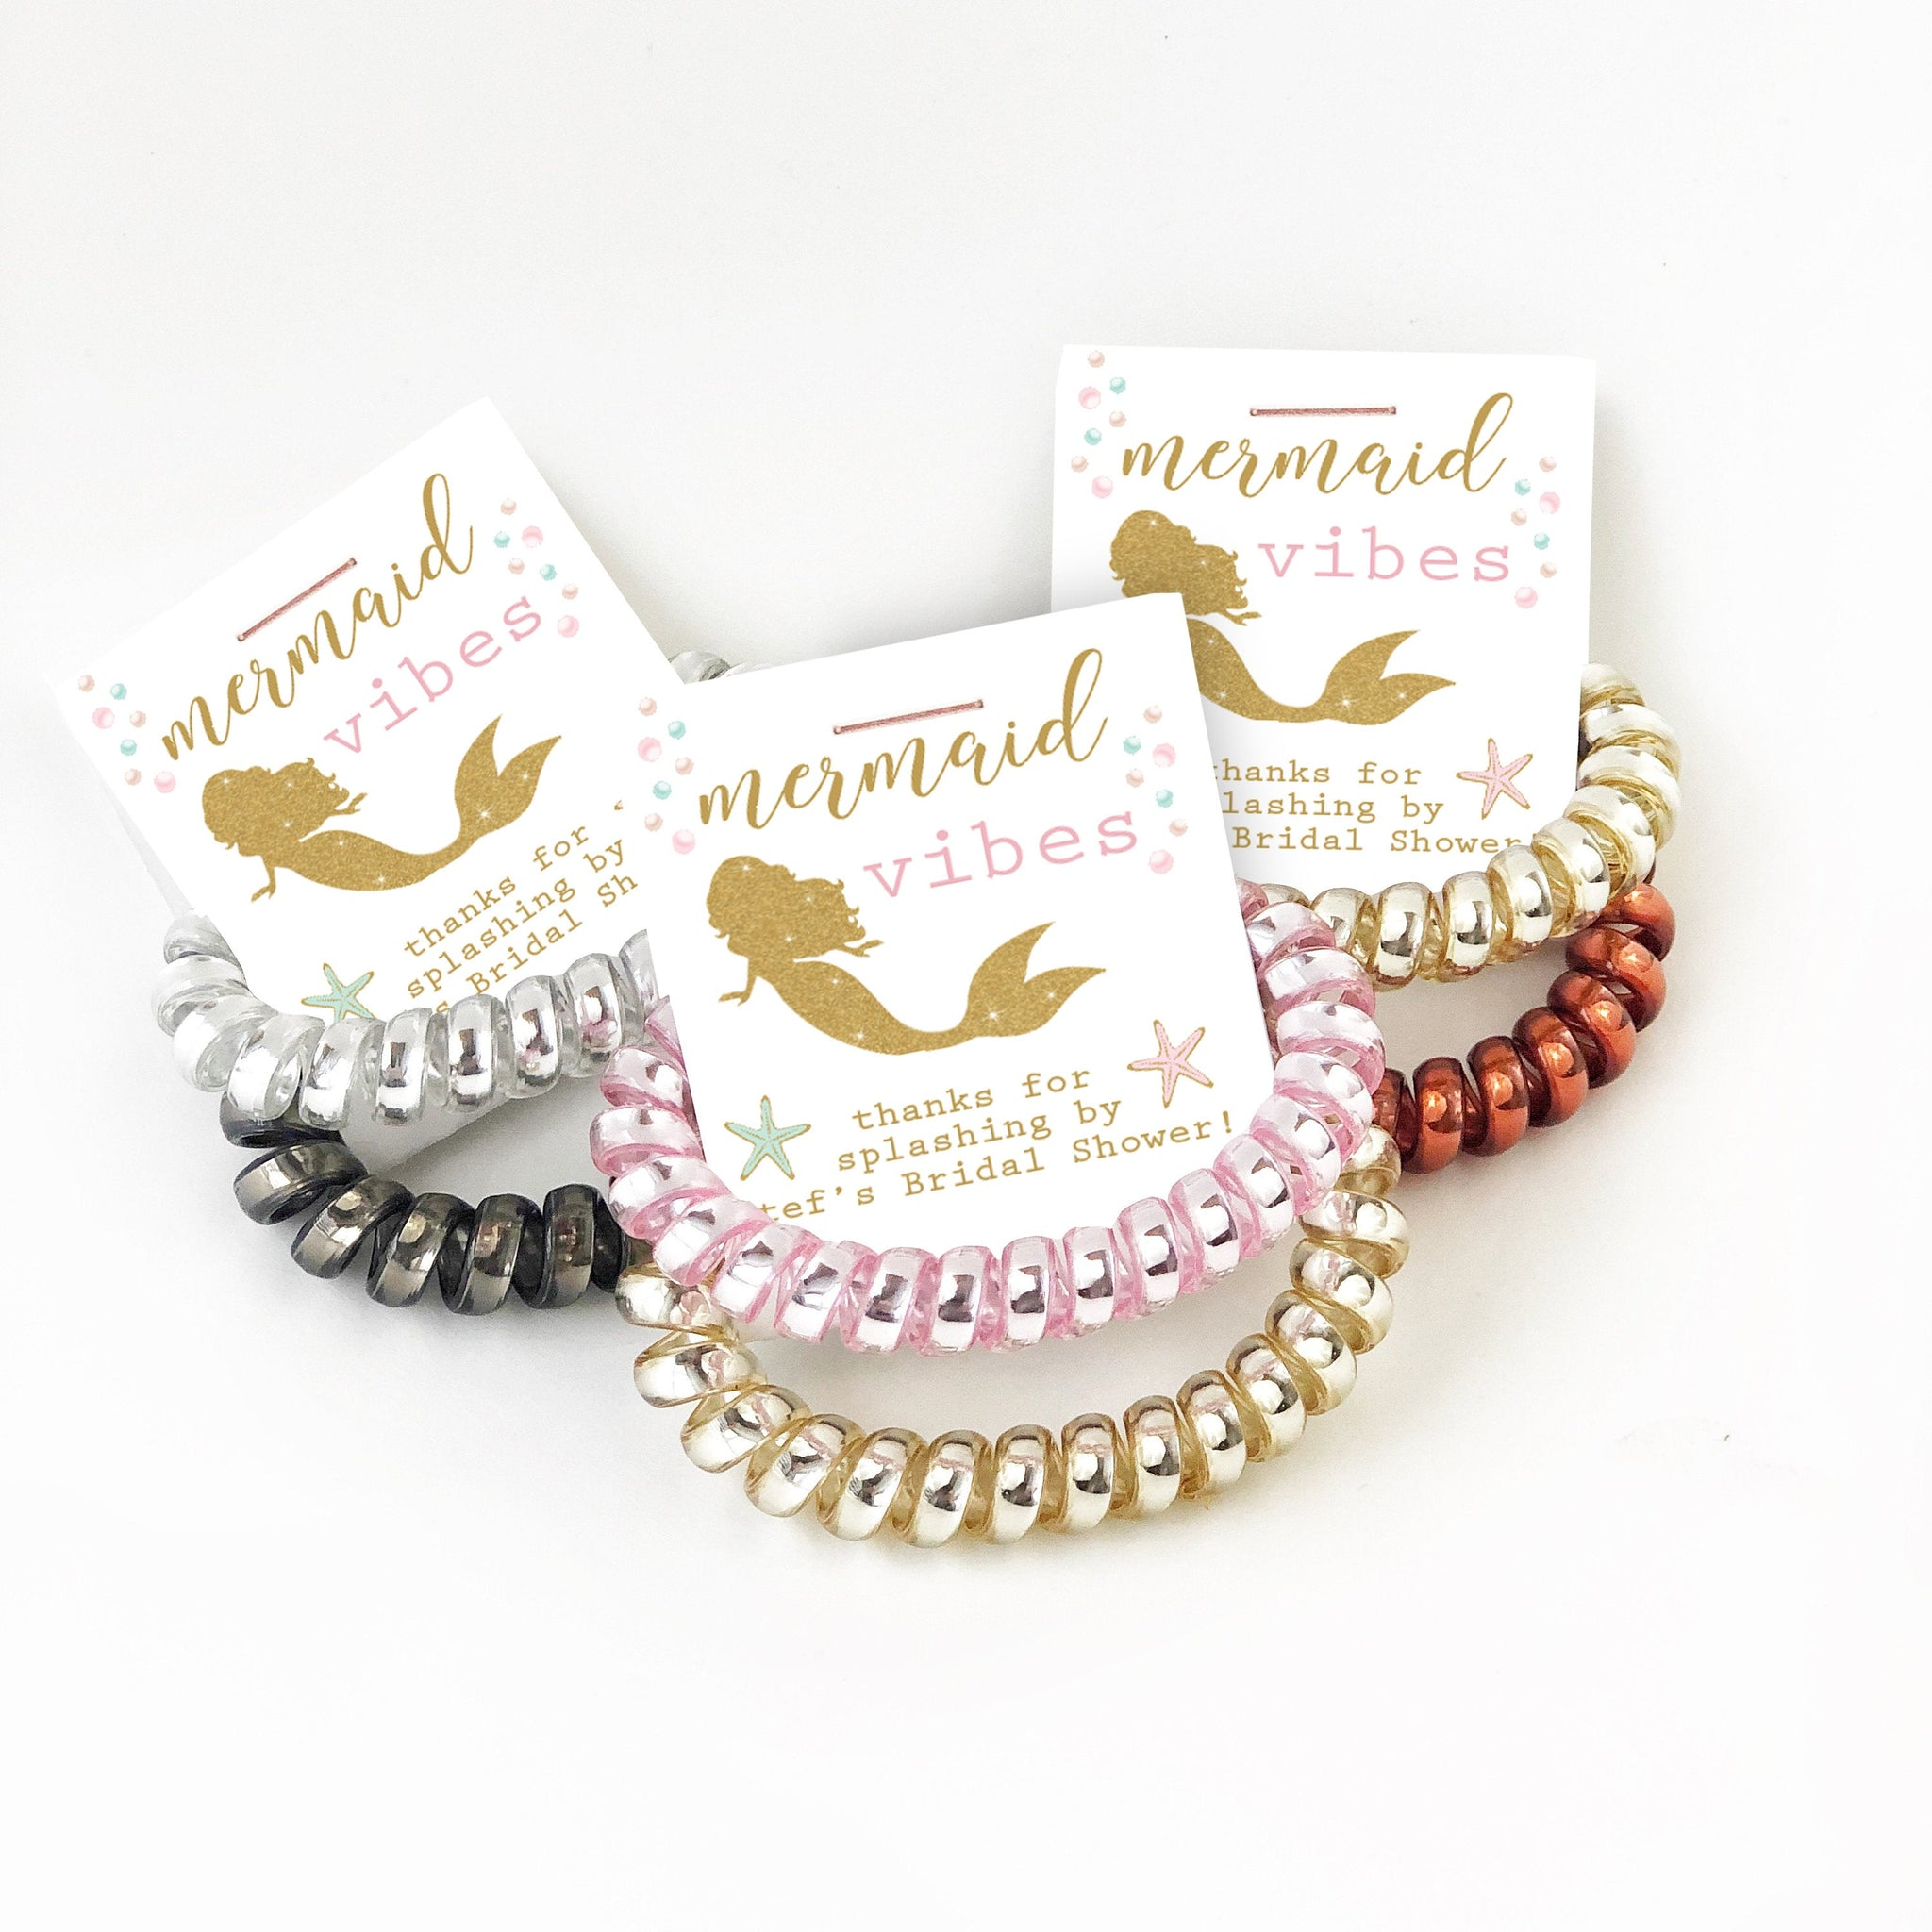 Mermaid Bridal Shower Favors, Mermaid Vibes Spiral Hair Ties - @PlumPolkaDot